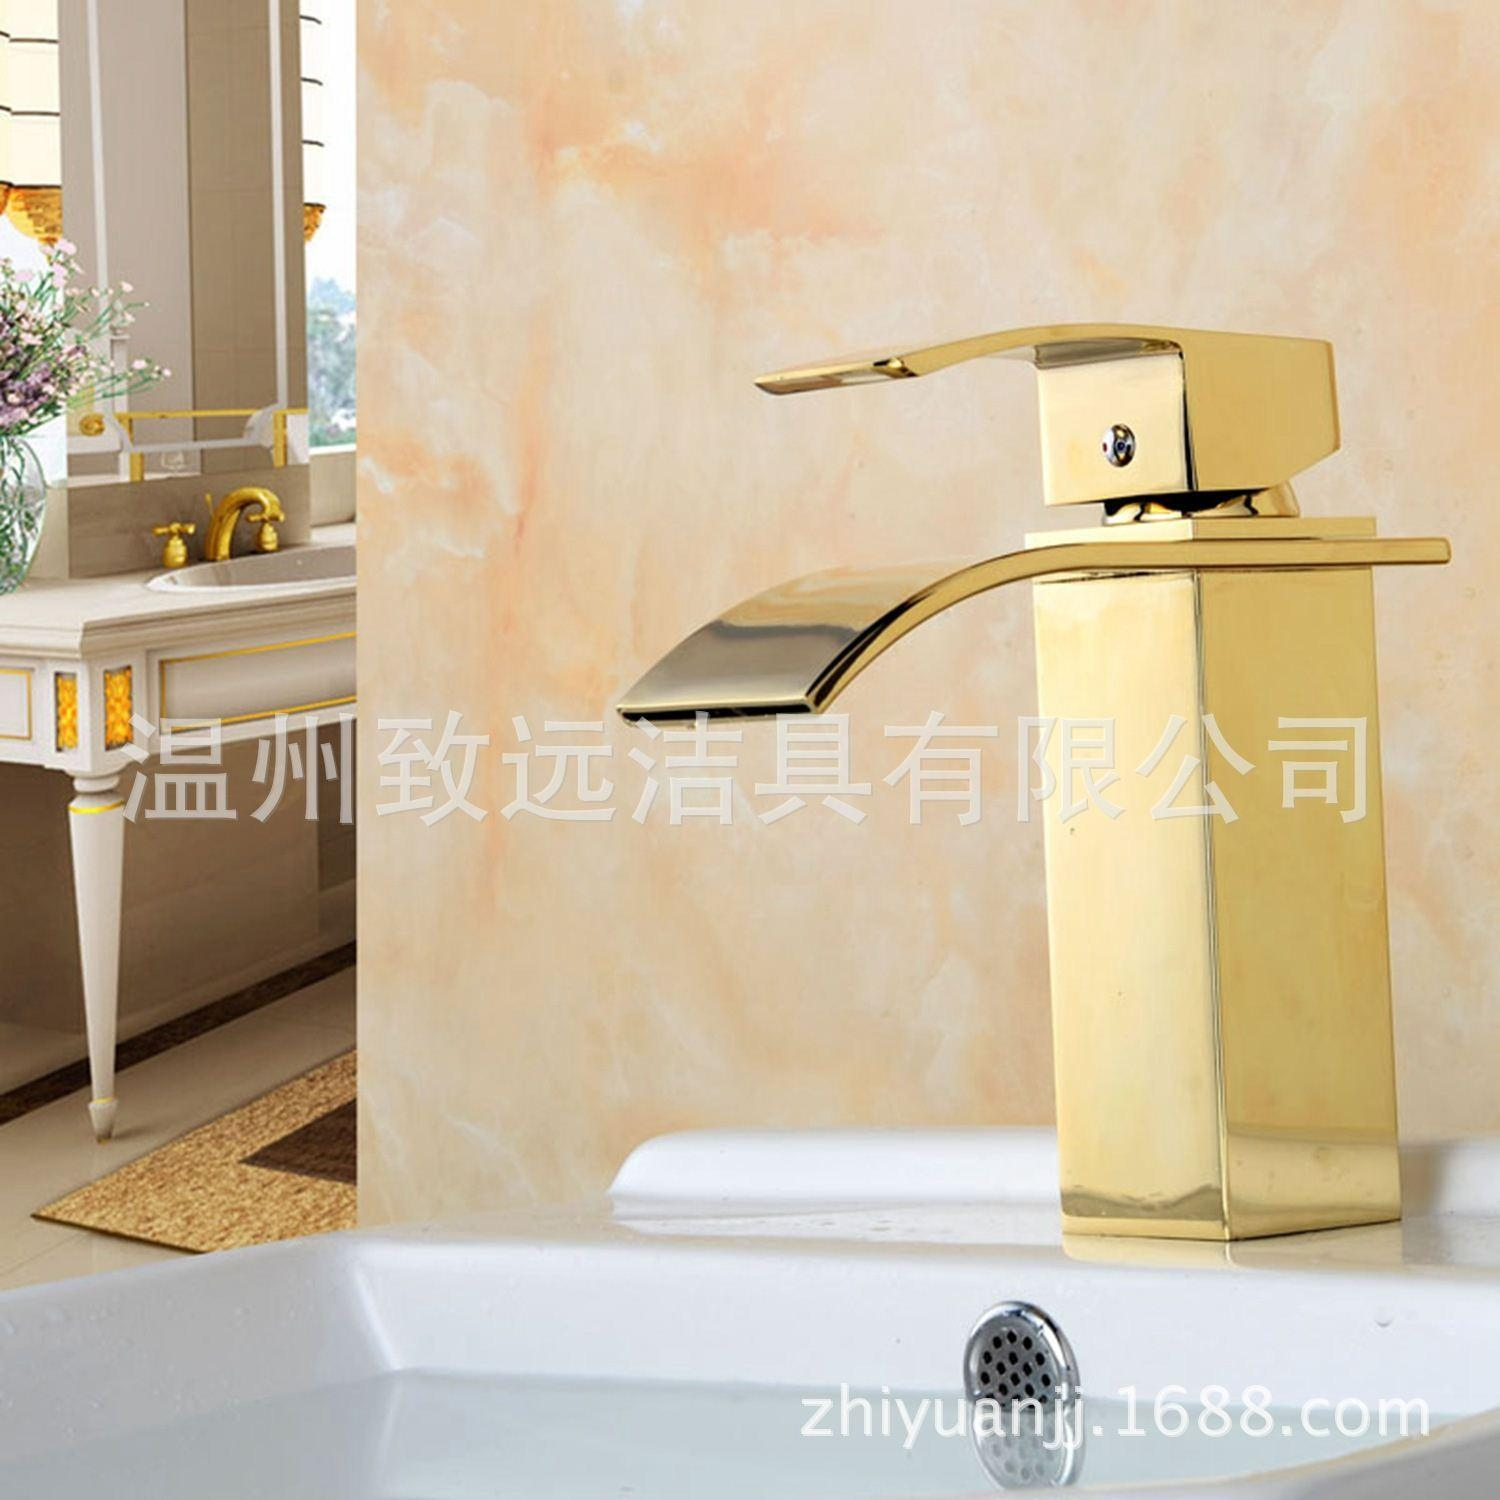 Ideas, 2017 golden copper sink waterfall faucet luxury lavatory faucet pertaining to dimensions 1500 x 1500  .